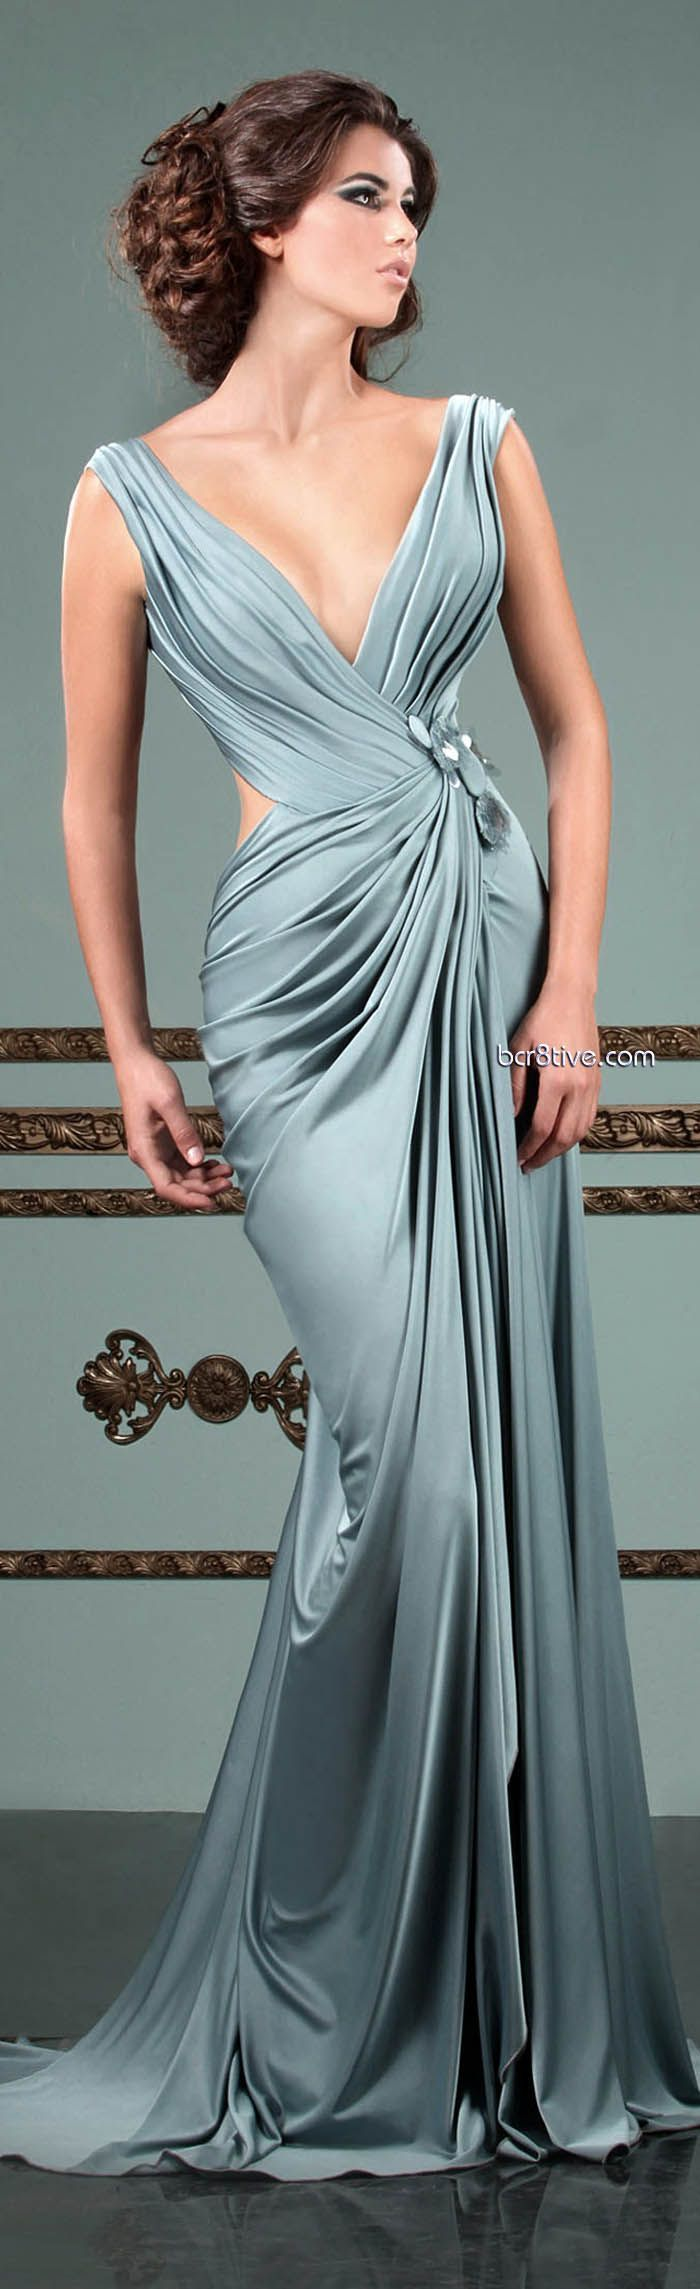 T couture prom dresses th vestidos pinterest prom couture